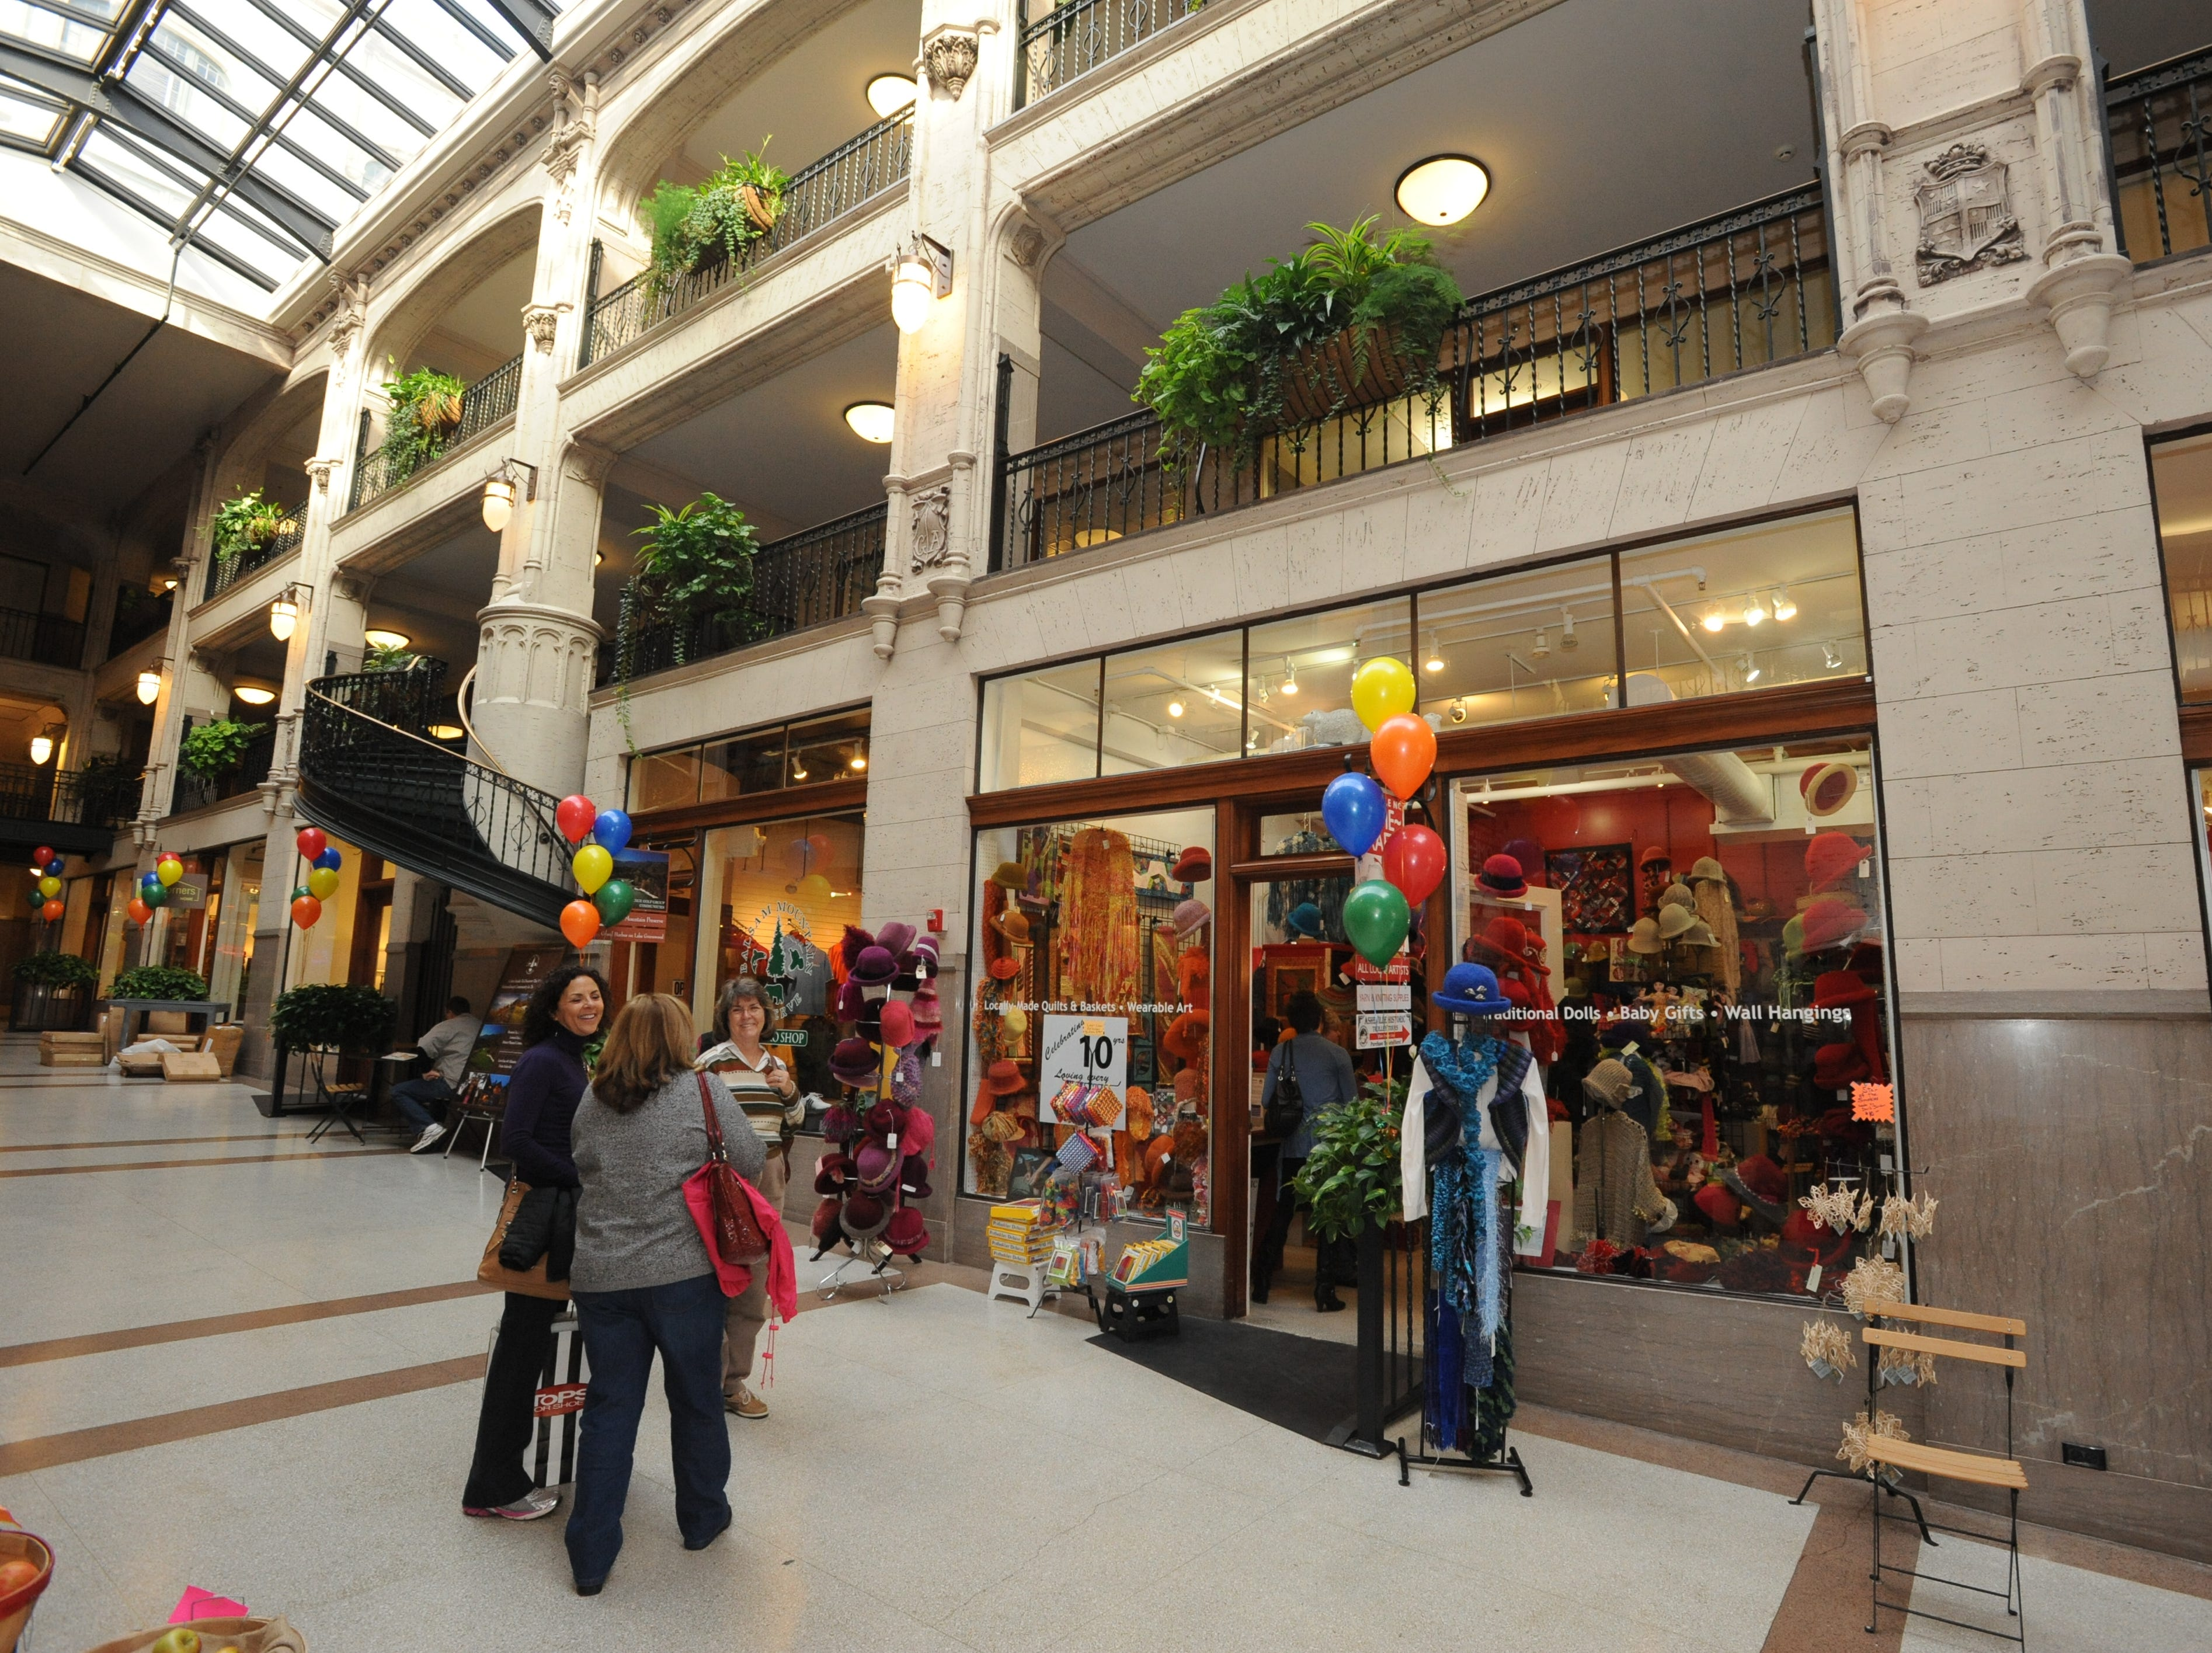 The interior of the Grove Arcade includes shops and restaurants. In 2012, it marked its 10th anniversary of renovation.